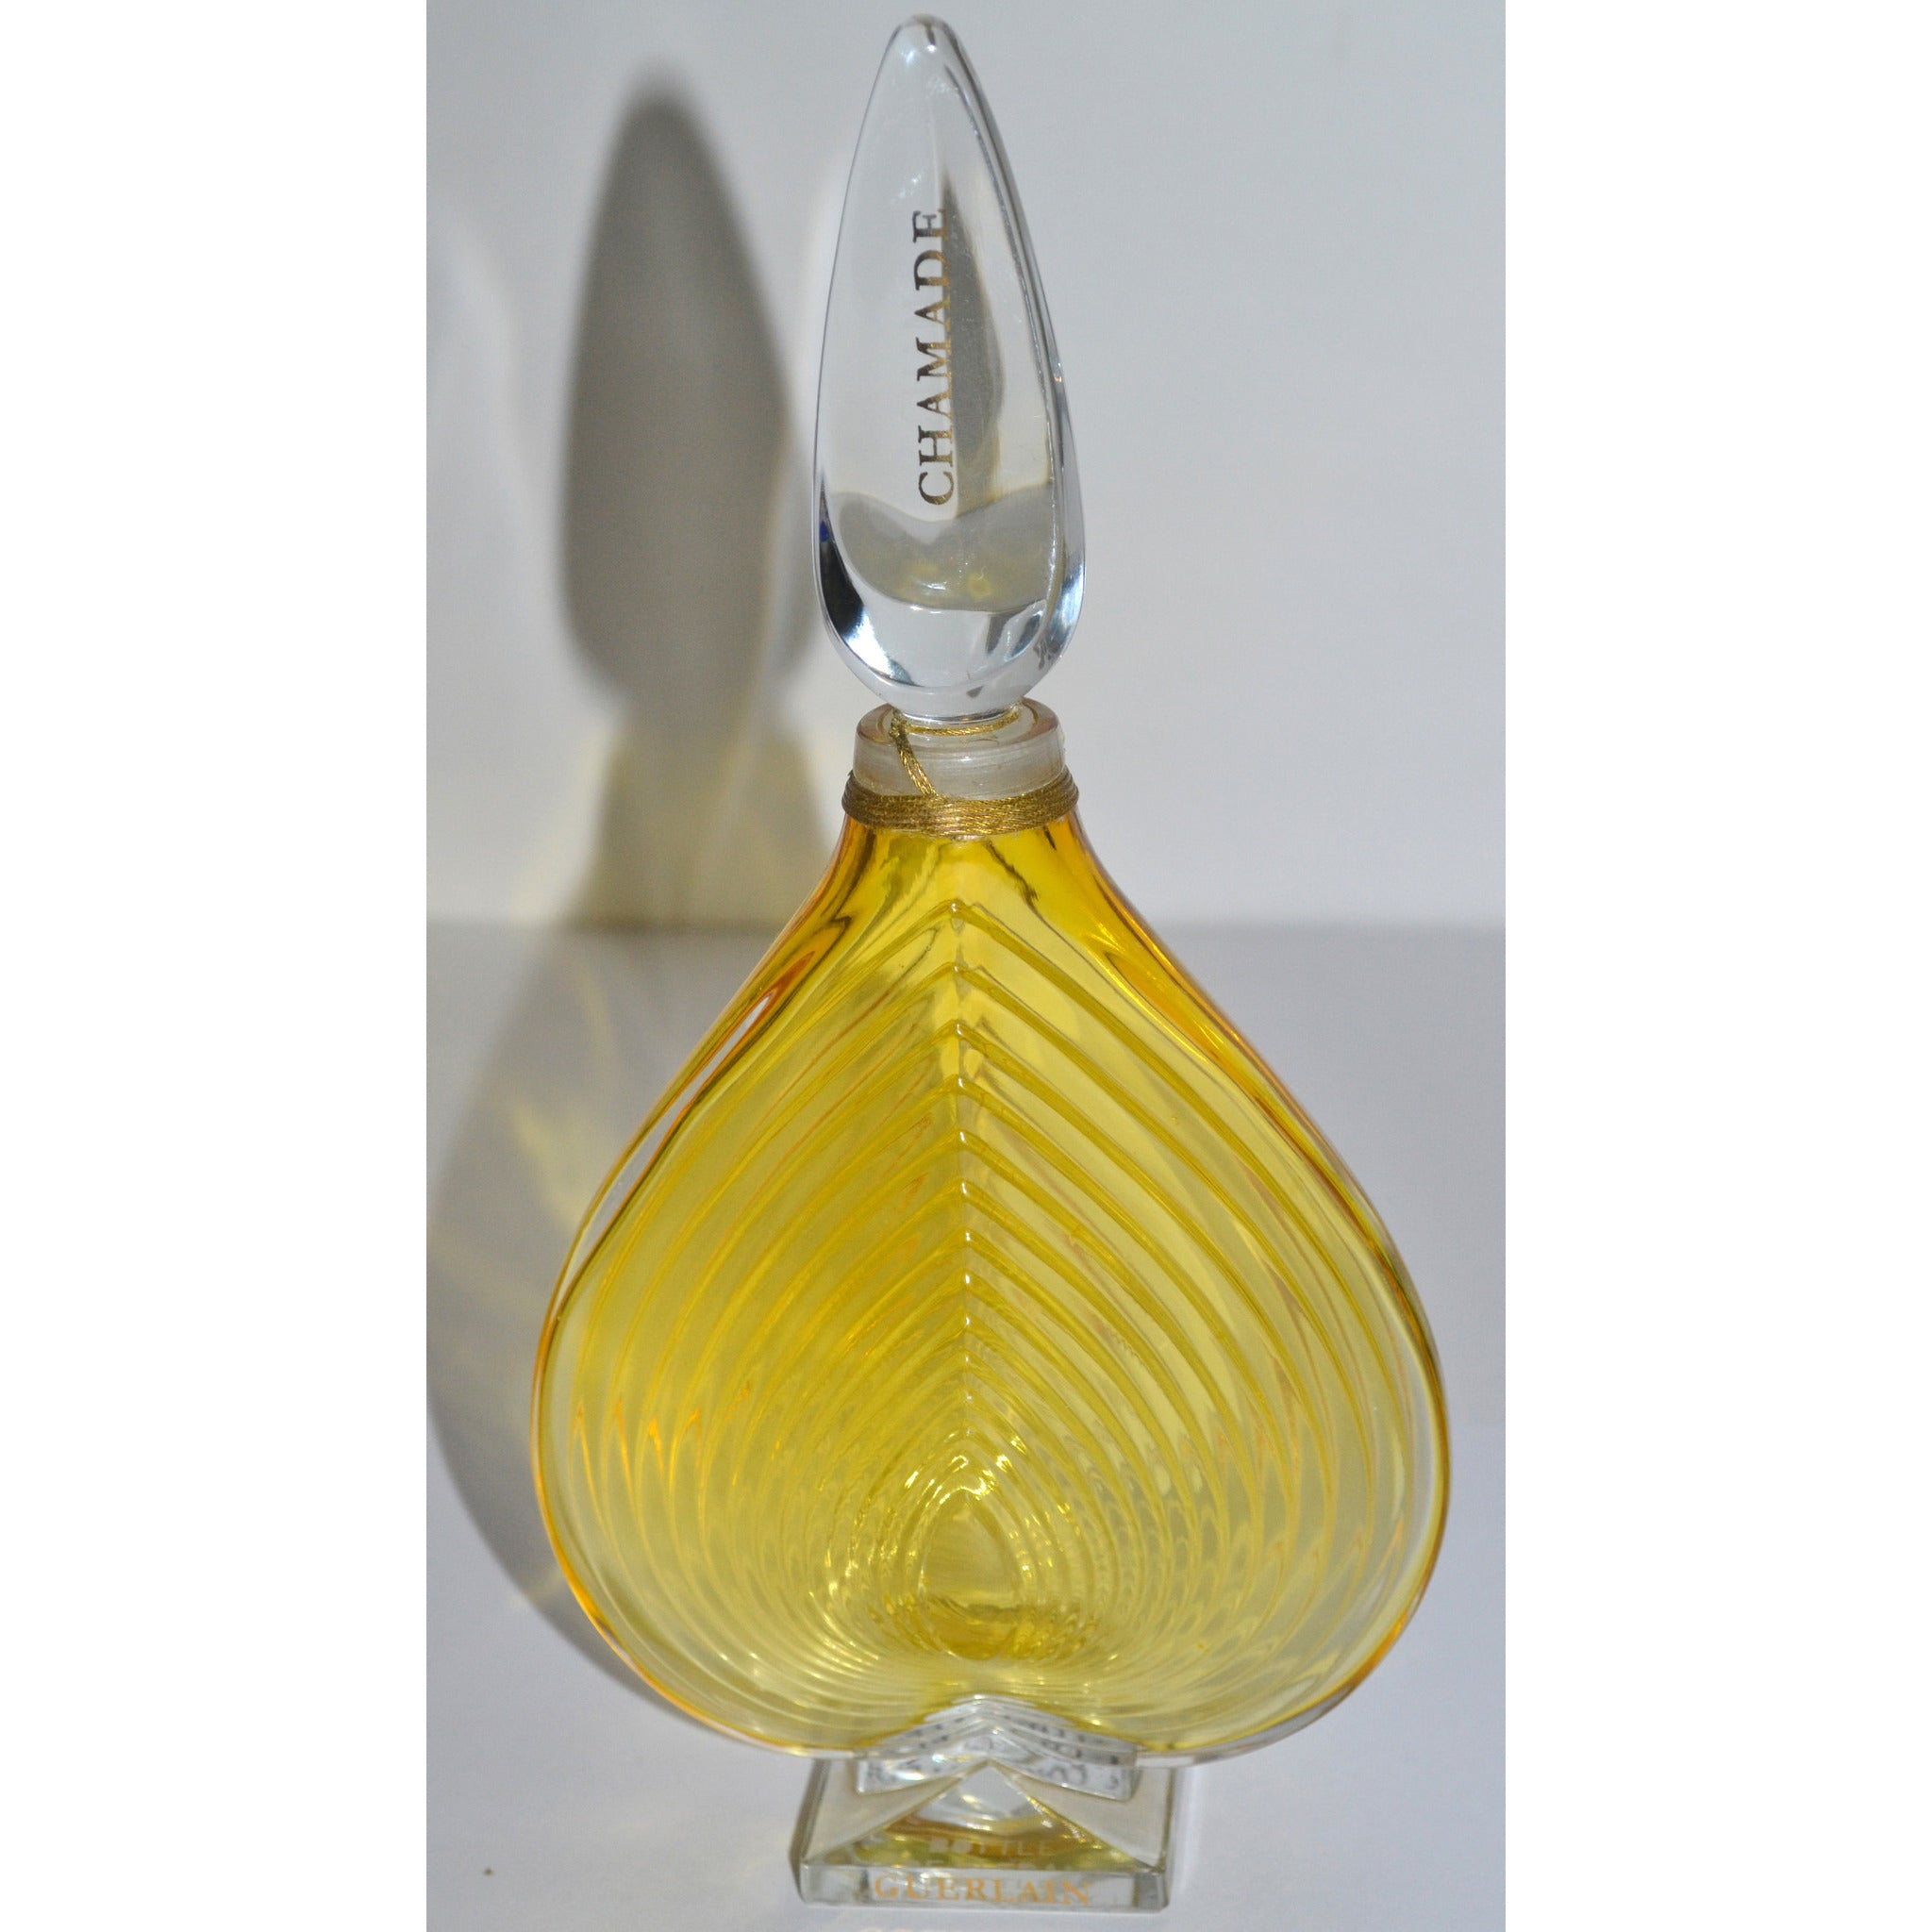 Vintage Chamade Perfume Factice Bottle By Guerlain